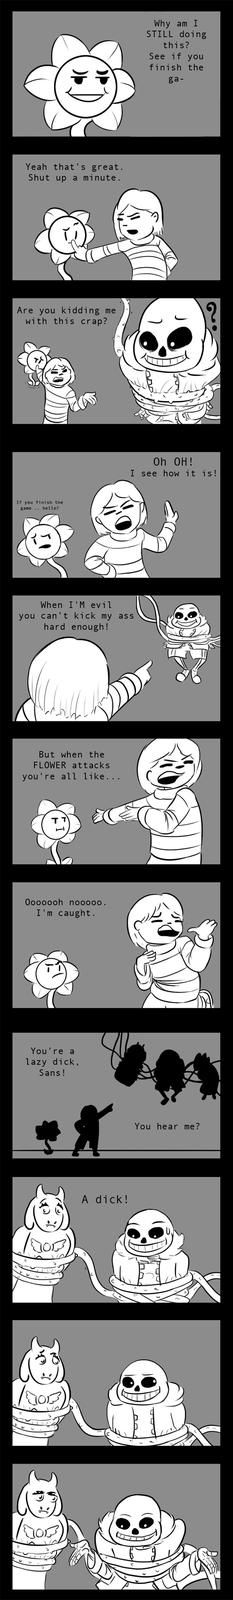 Even Frisk is sick of your crap, Sans.